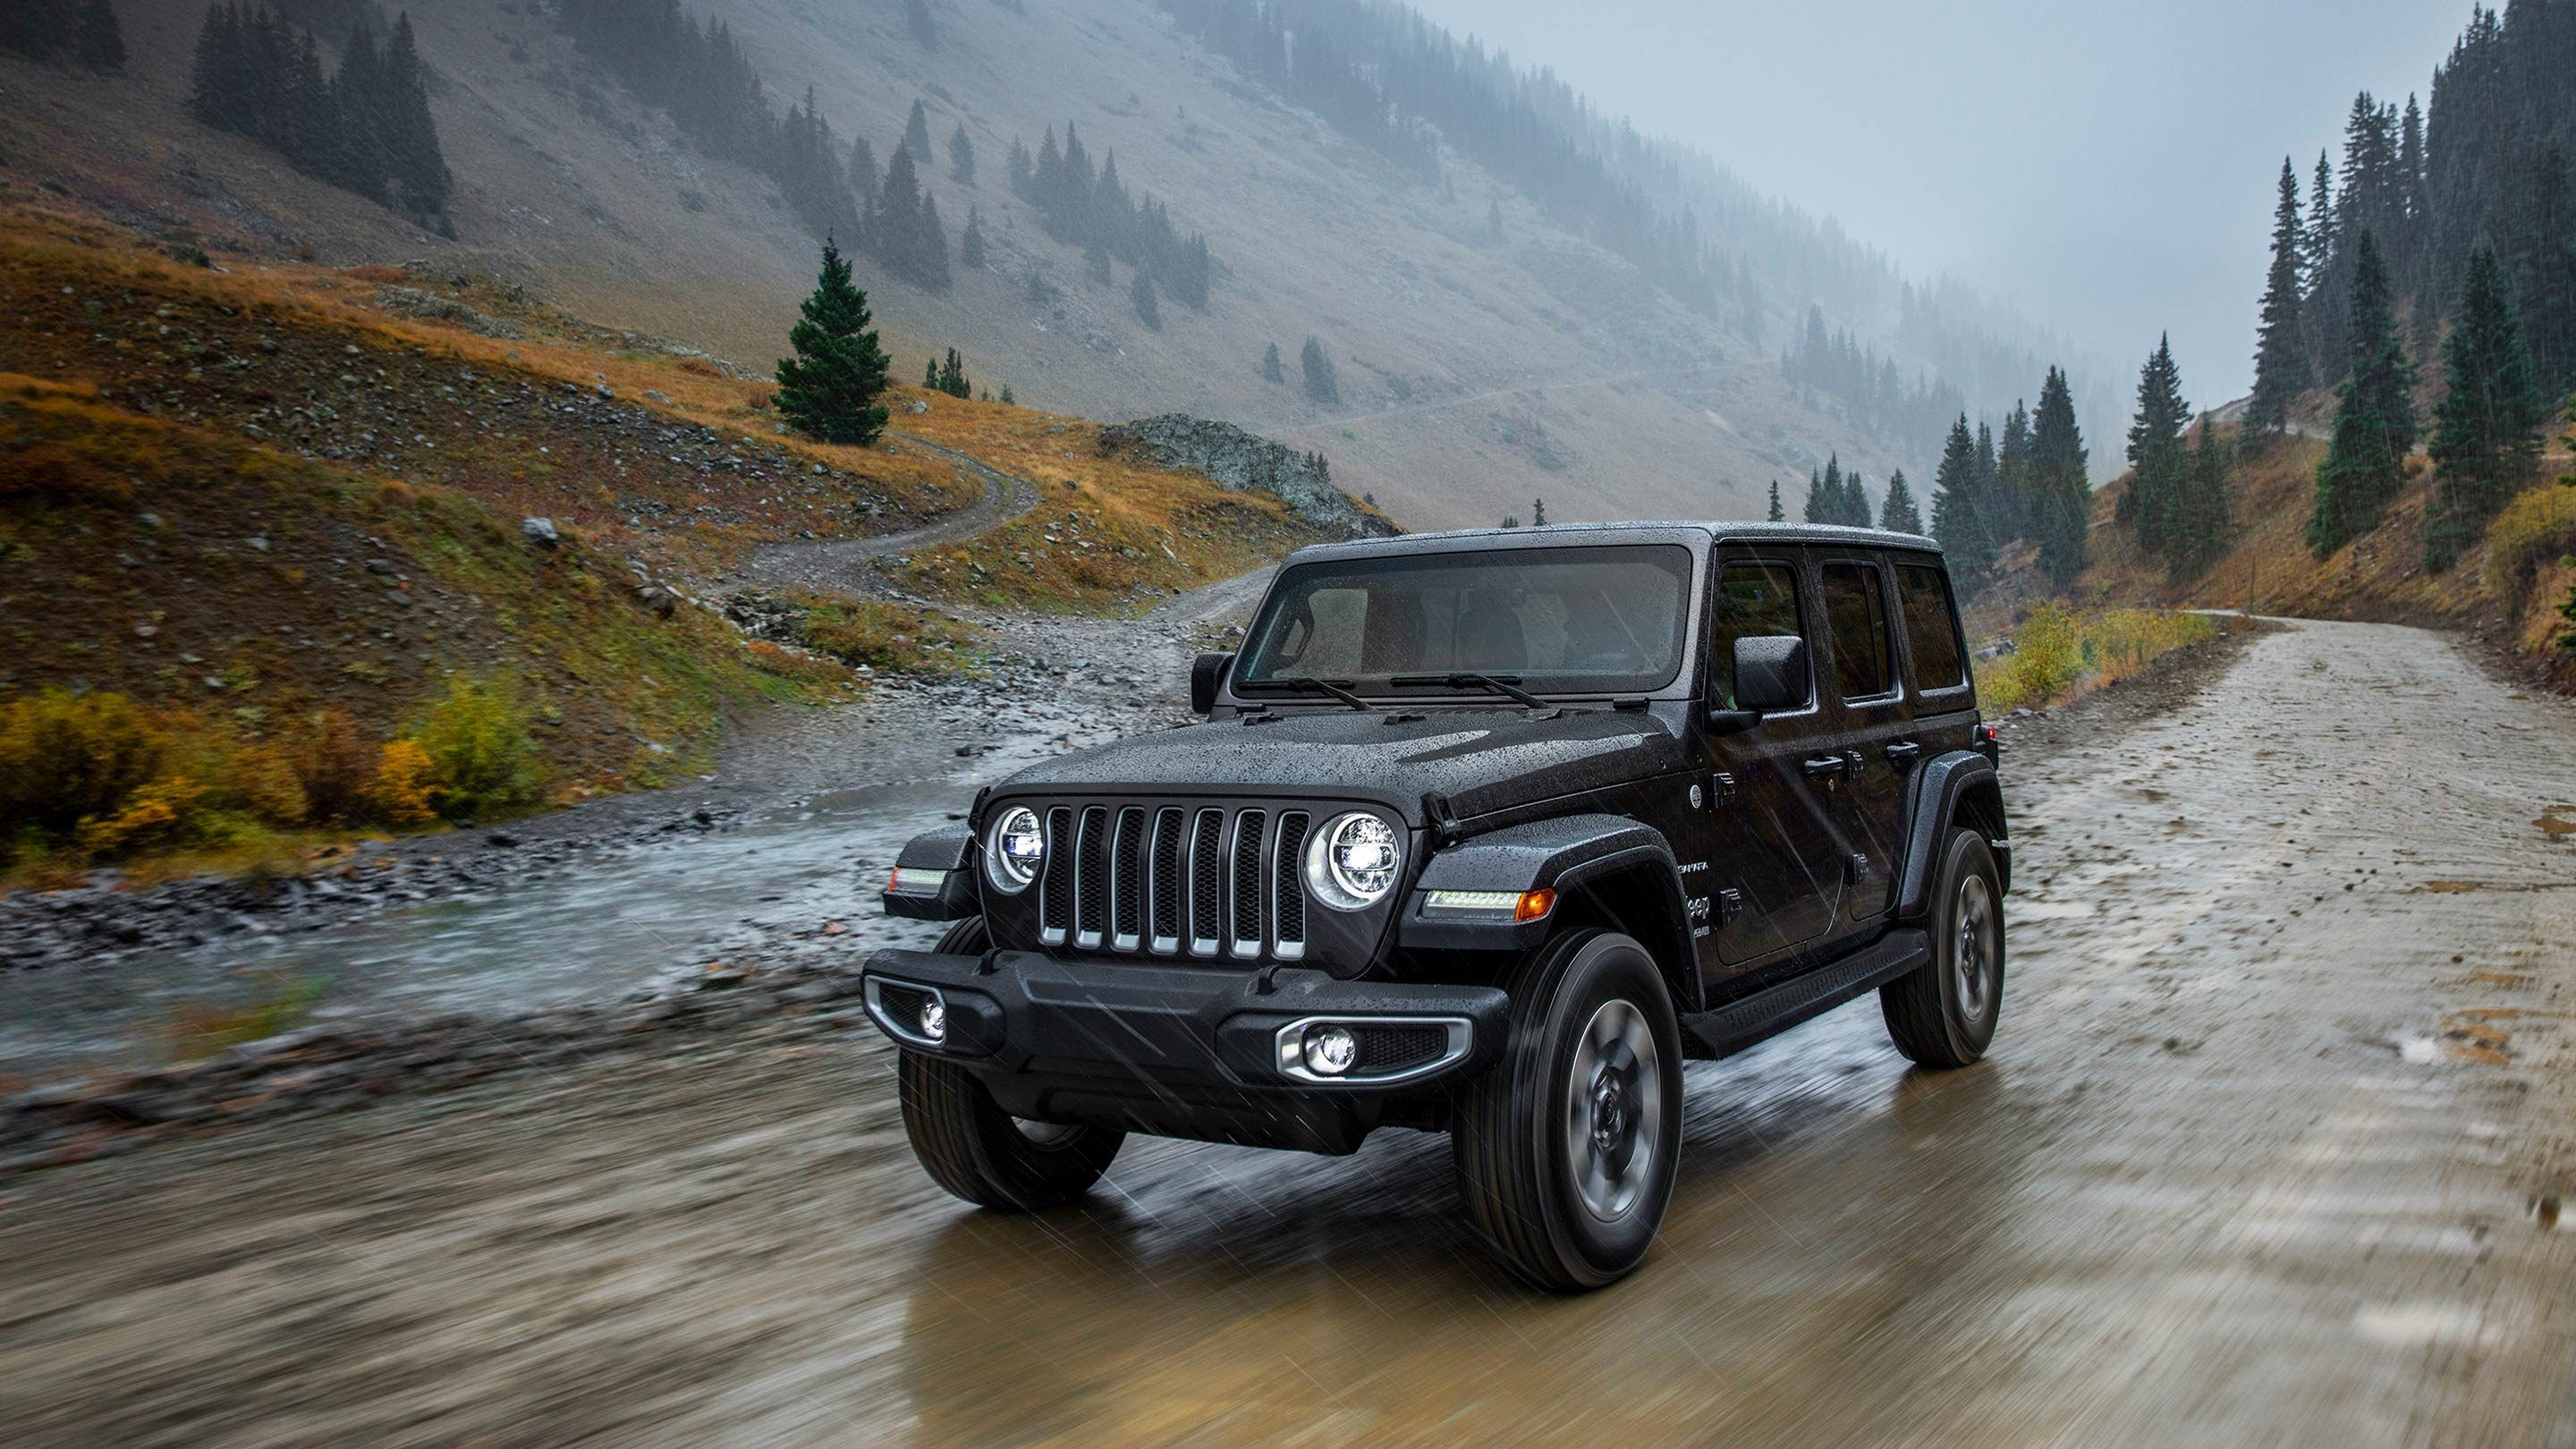 The Jeep Wrangler JL Will Take You Anywhere